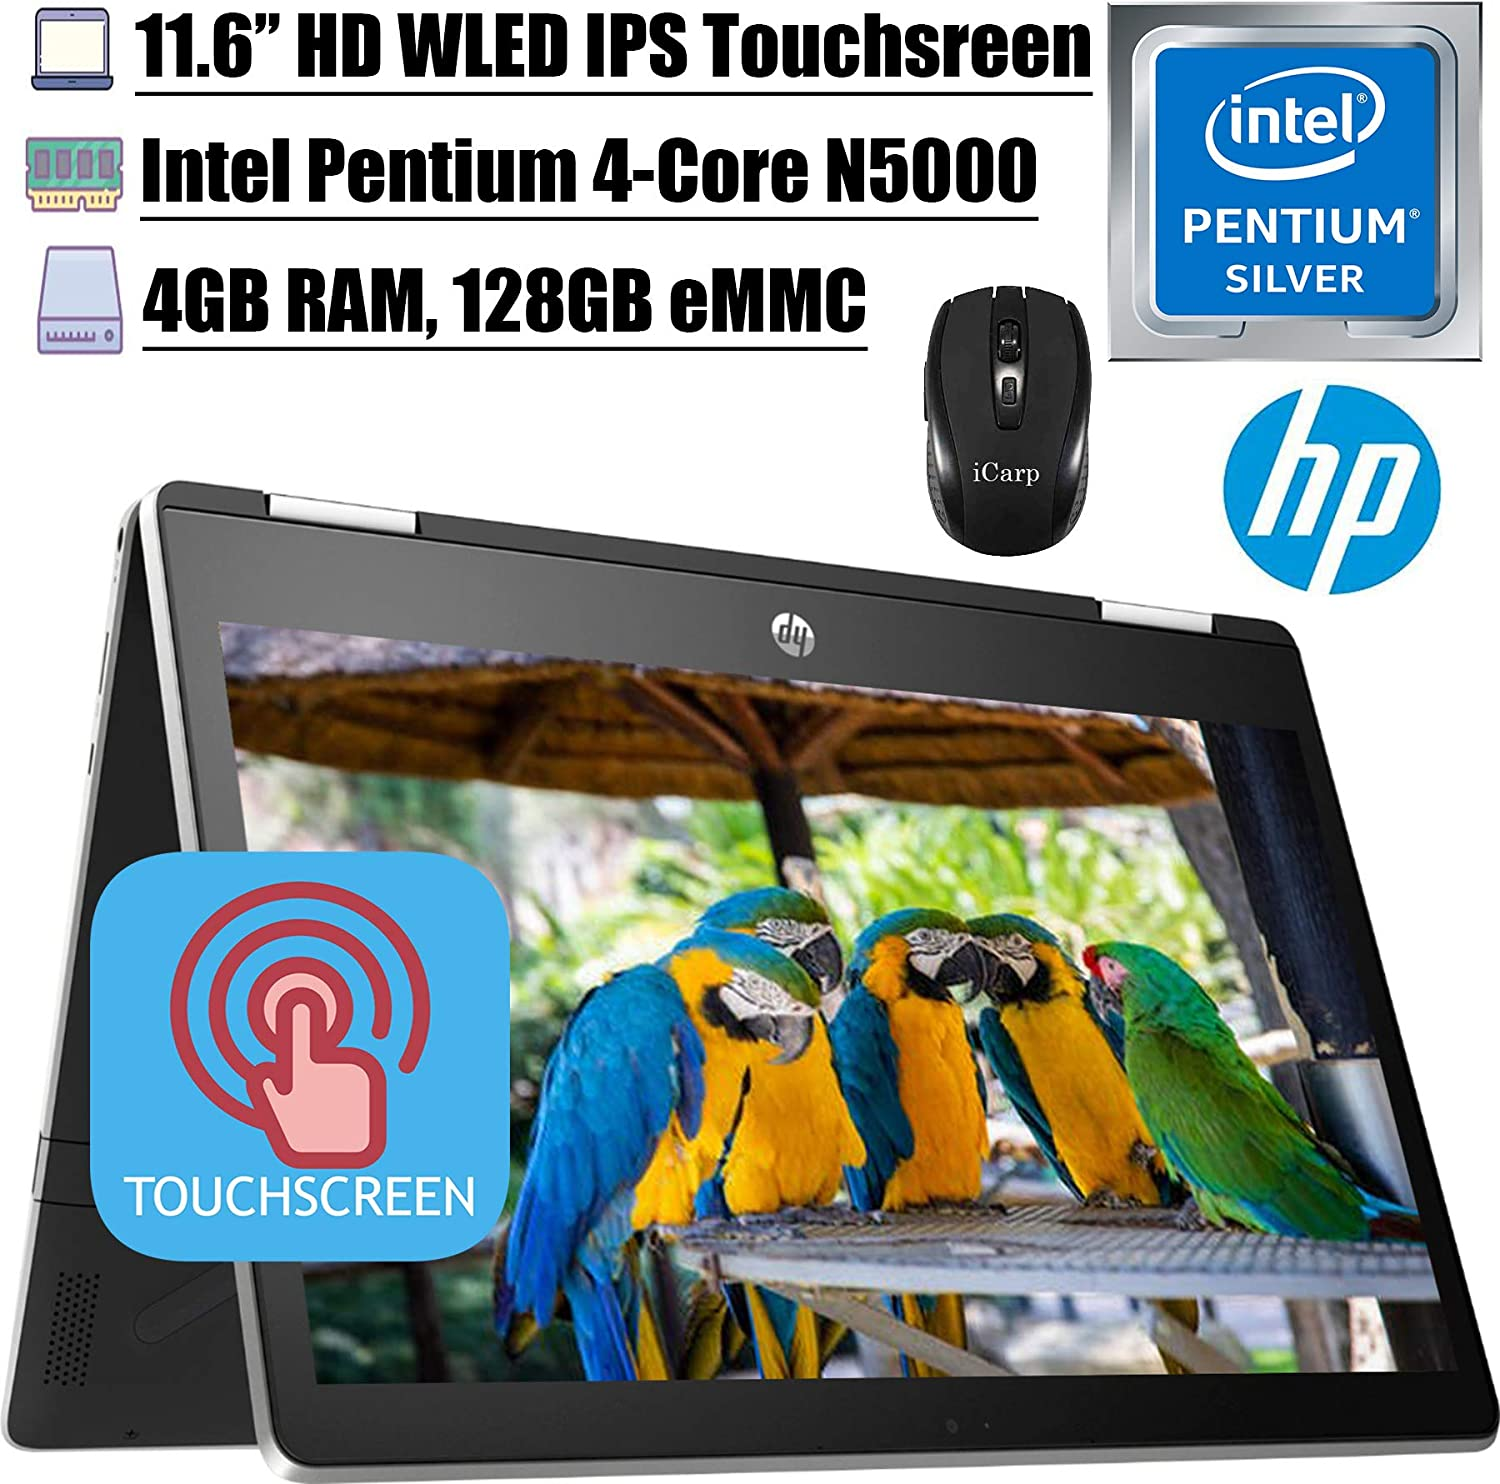 "2020 Latest HP Pavilion X360 11 2 in 1 Laptop 11.6"" HD IPS Touchscreen Intel Quad-Core Pentium Silver N5000 4GB DDR4 128GB eMMC Card HP Audio Boost WiFi HDMI + iCarp Wireless Mouse"